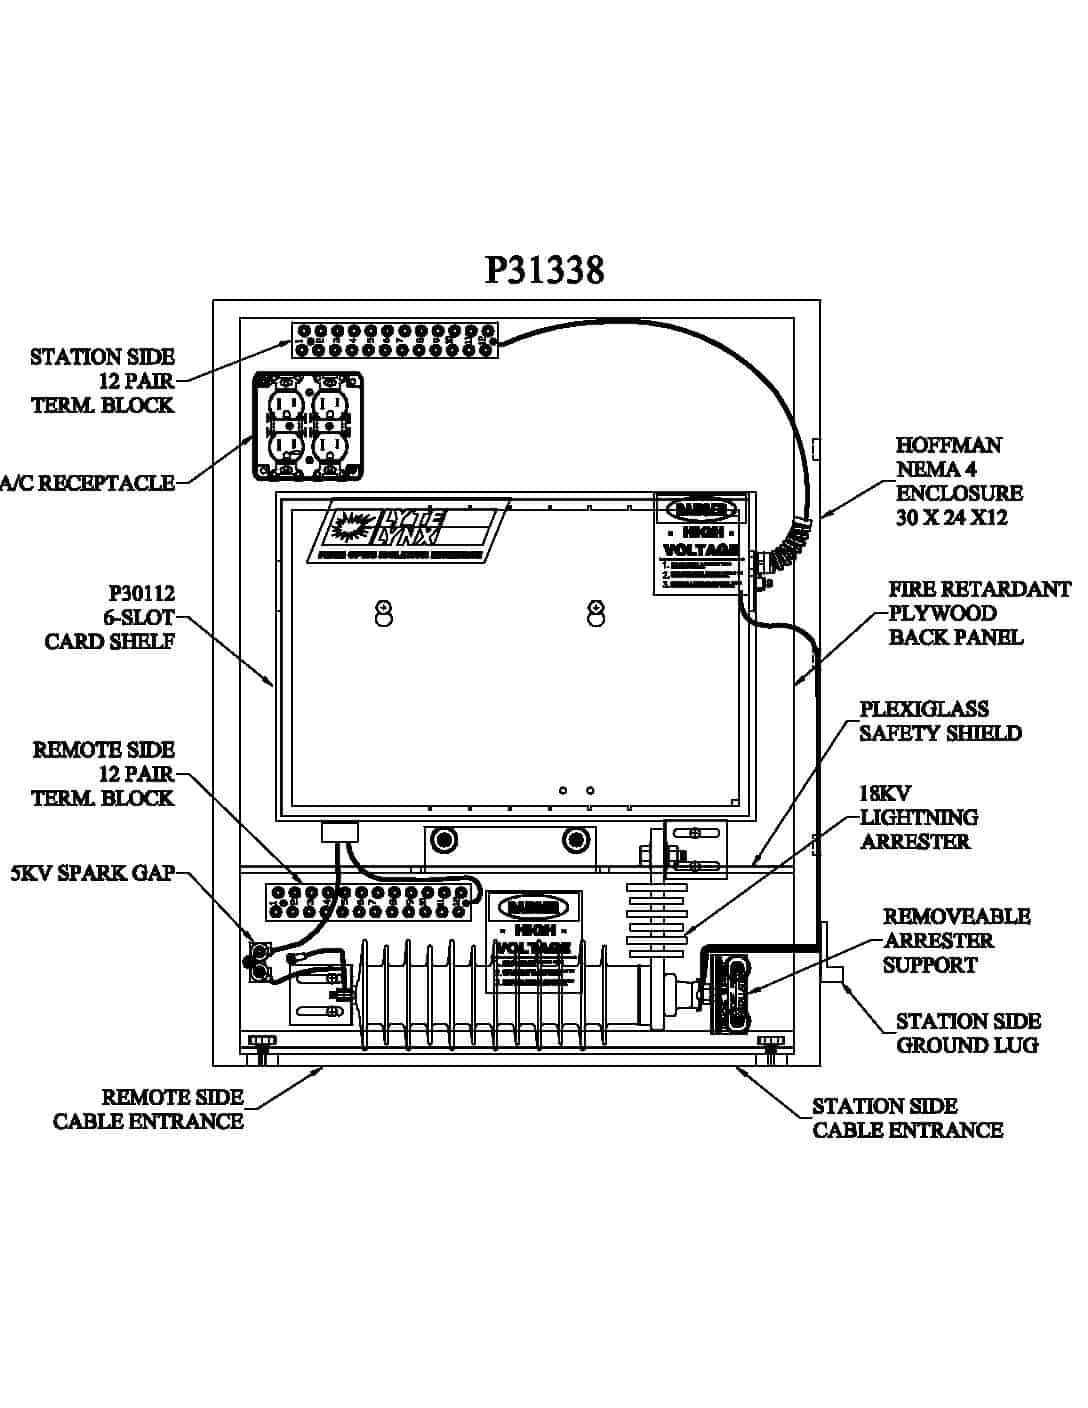 P31338 Turnkey Protection Packages – 6 slot PDF thumbnail